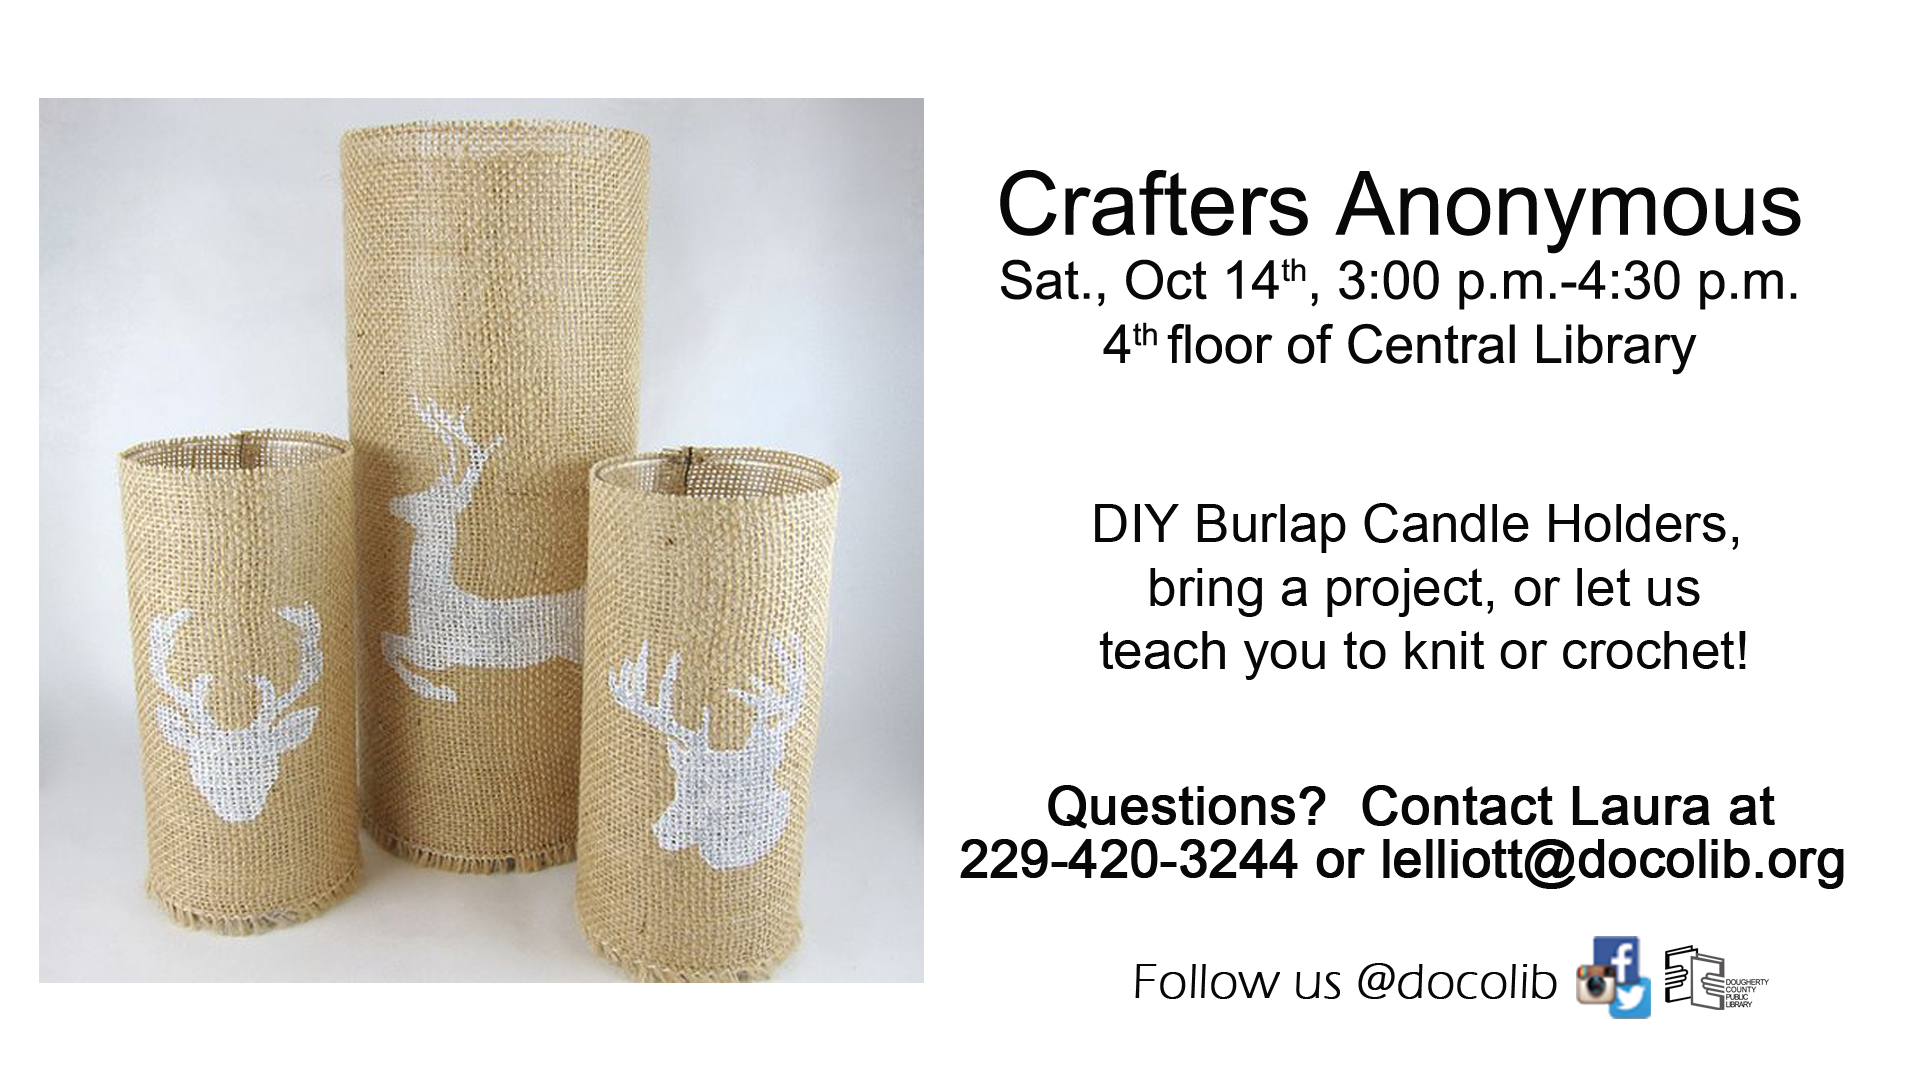 Crafter's Anonymous